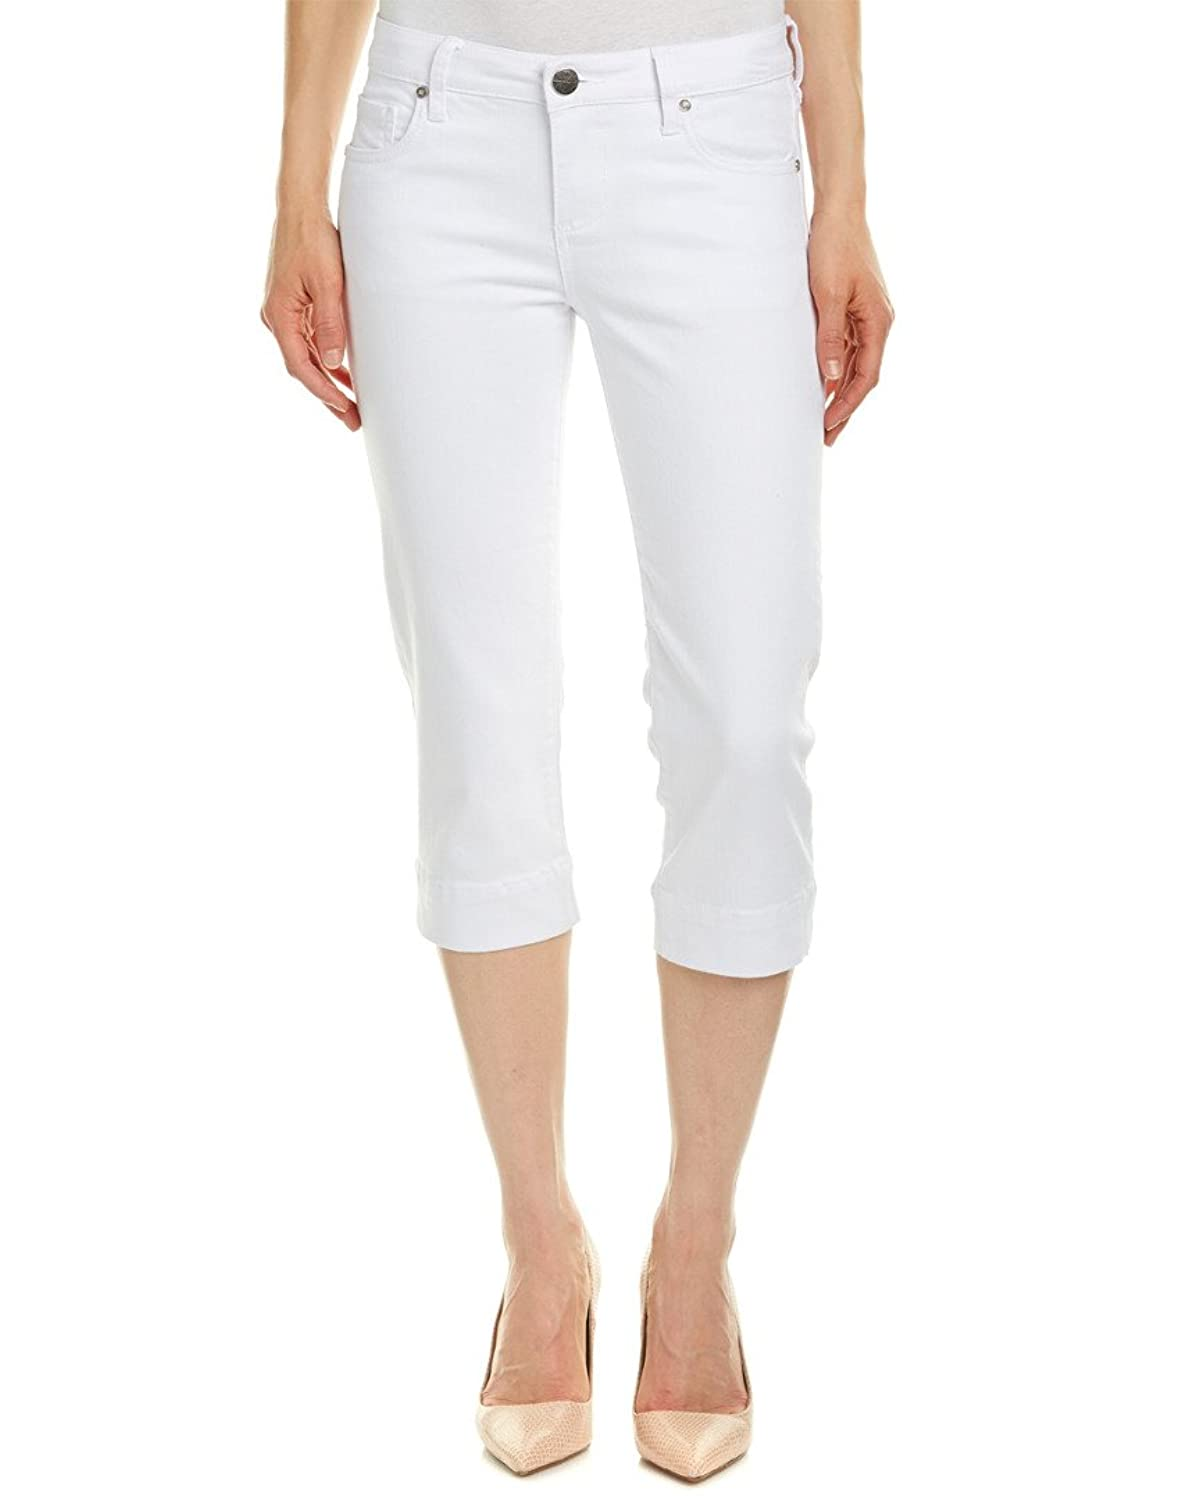 KUT from the Kloth Women's Basic Five-Pocket Crop Jeans in